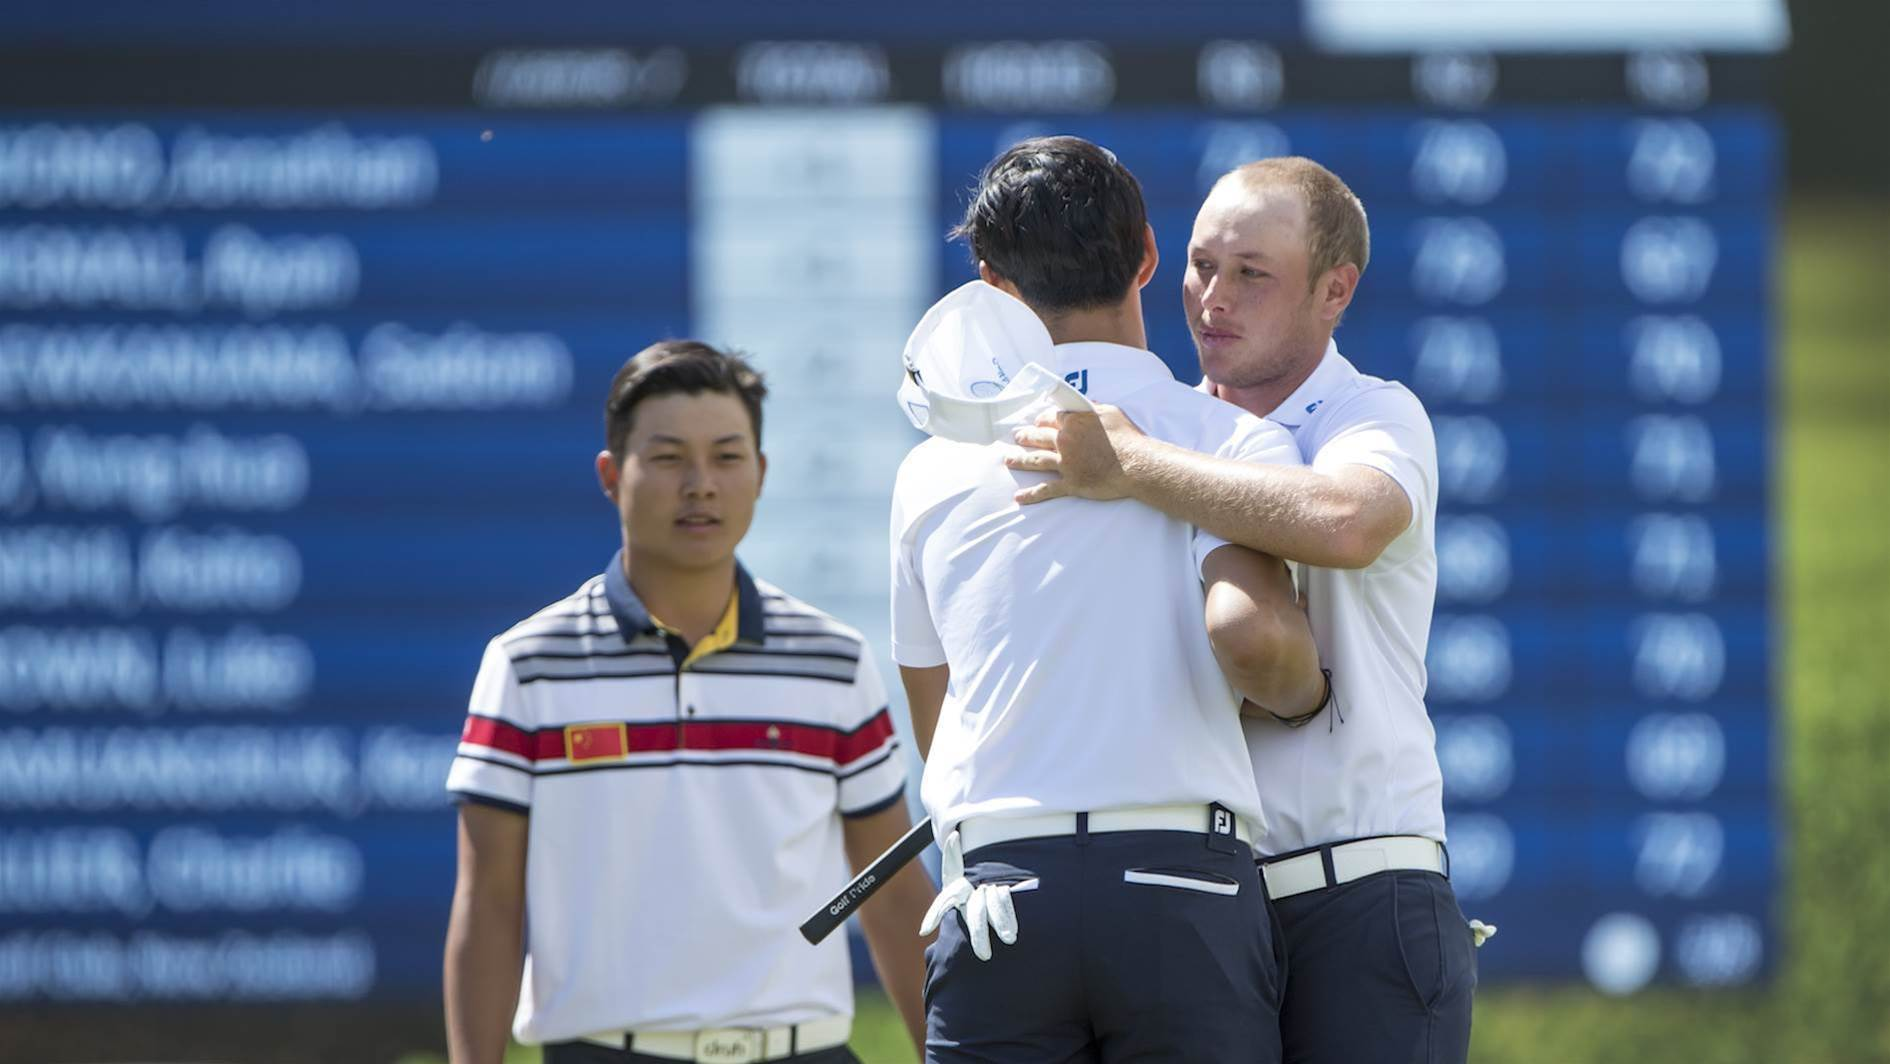 Aussie pair well poised for run at Asia-Pacific Amateur title